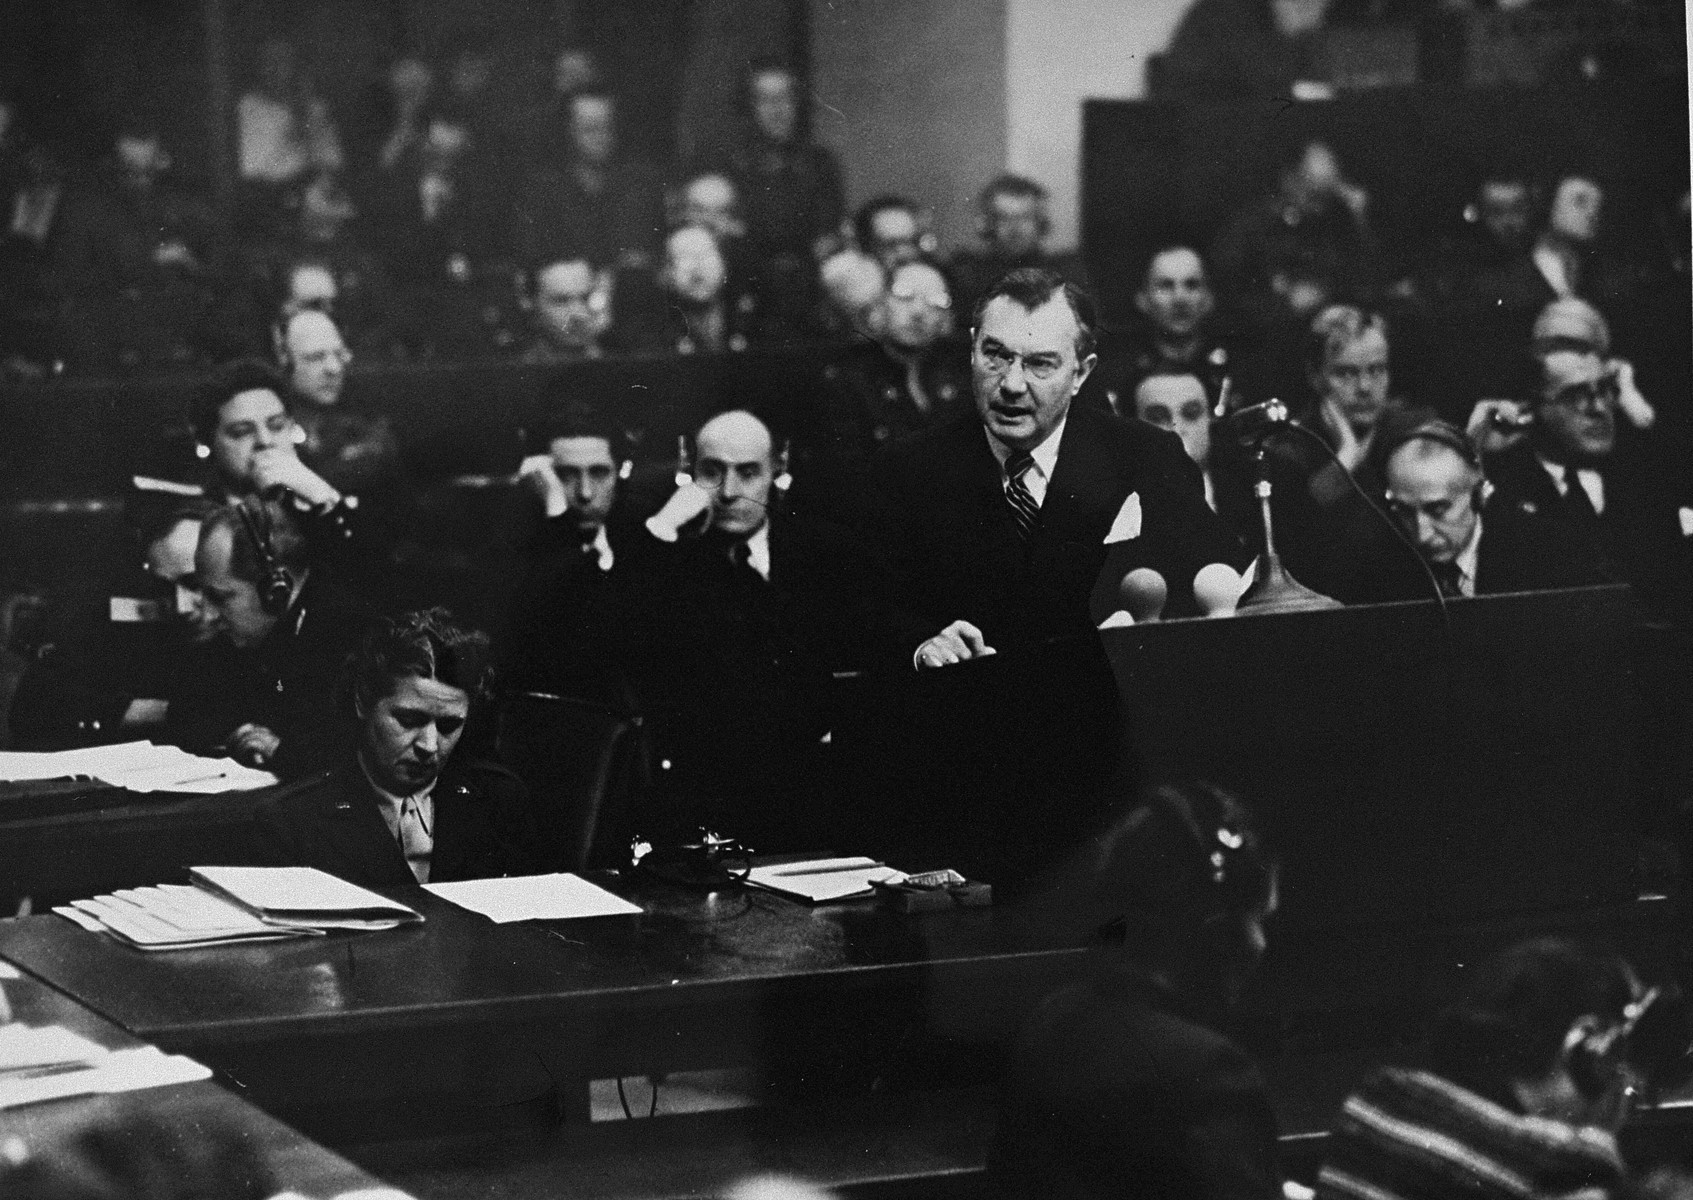 The influence of the nuremberg trials